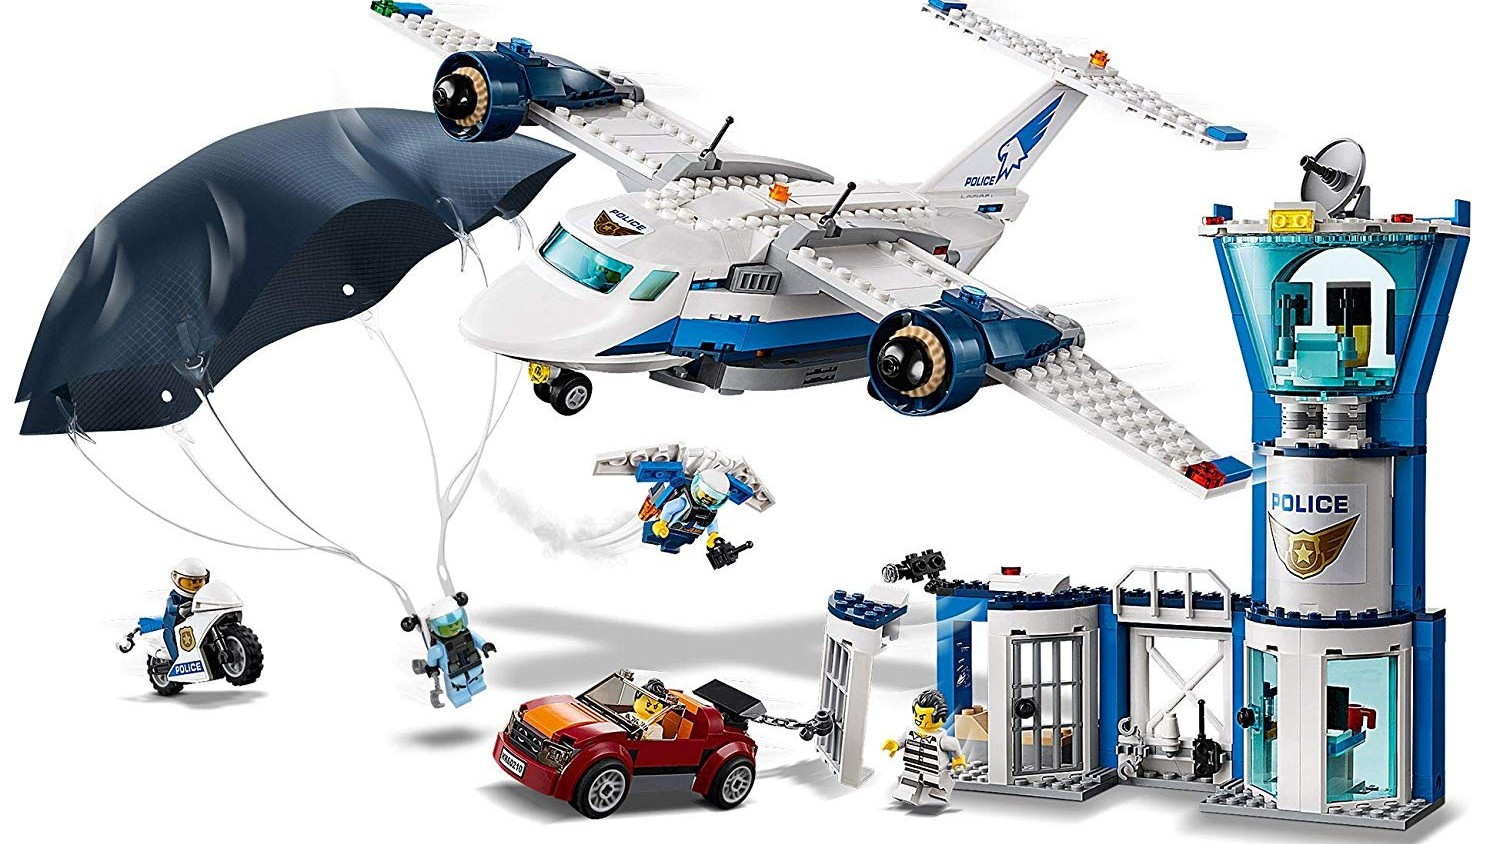 Best Lego City sets: Sky Police